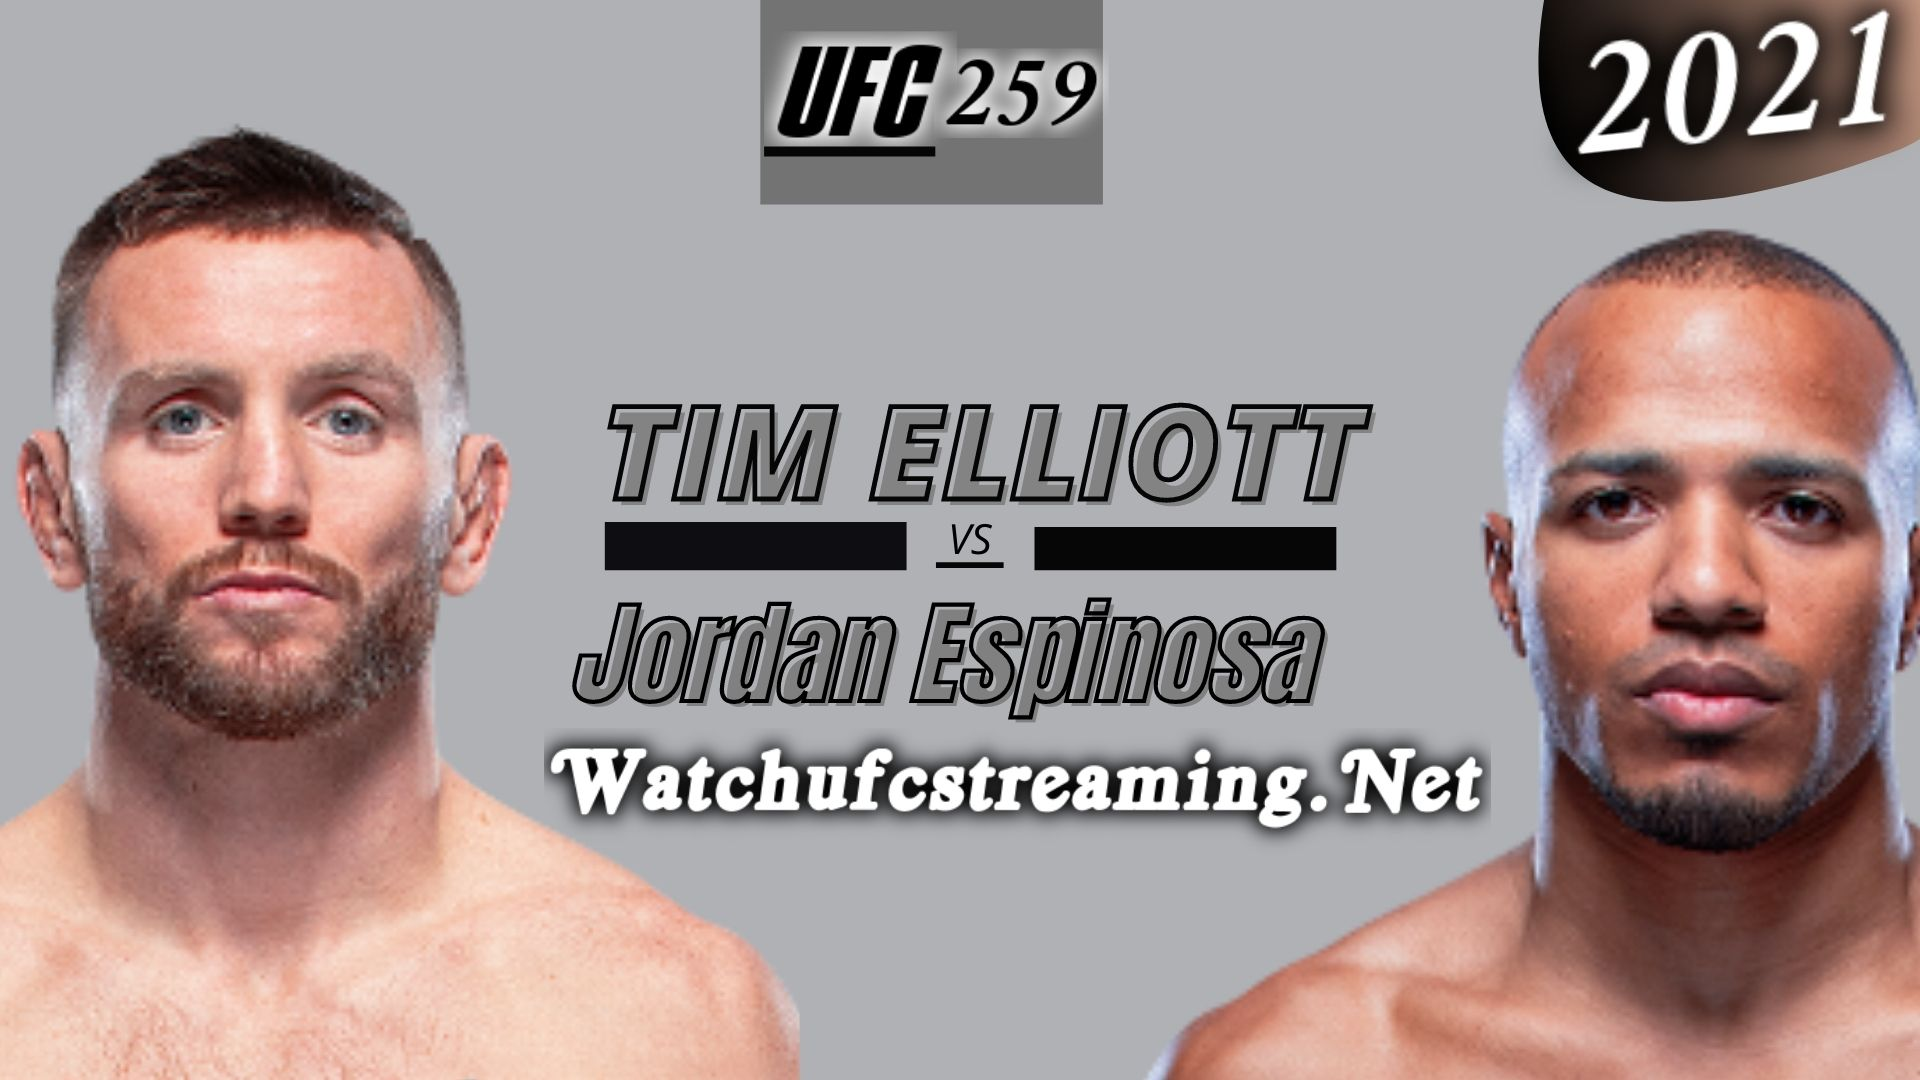 UFC 259: Tim Elliott Vs Jordan Espinosa Highlights 2021 | Flyweight